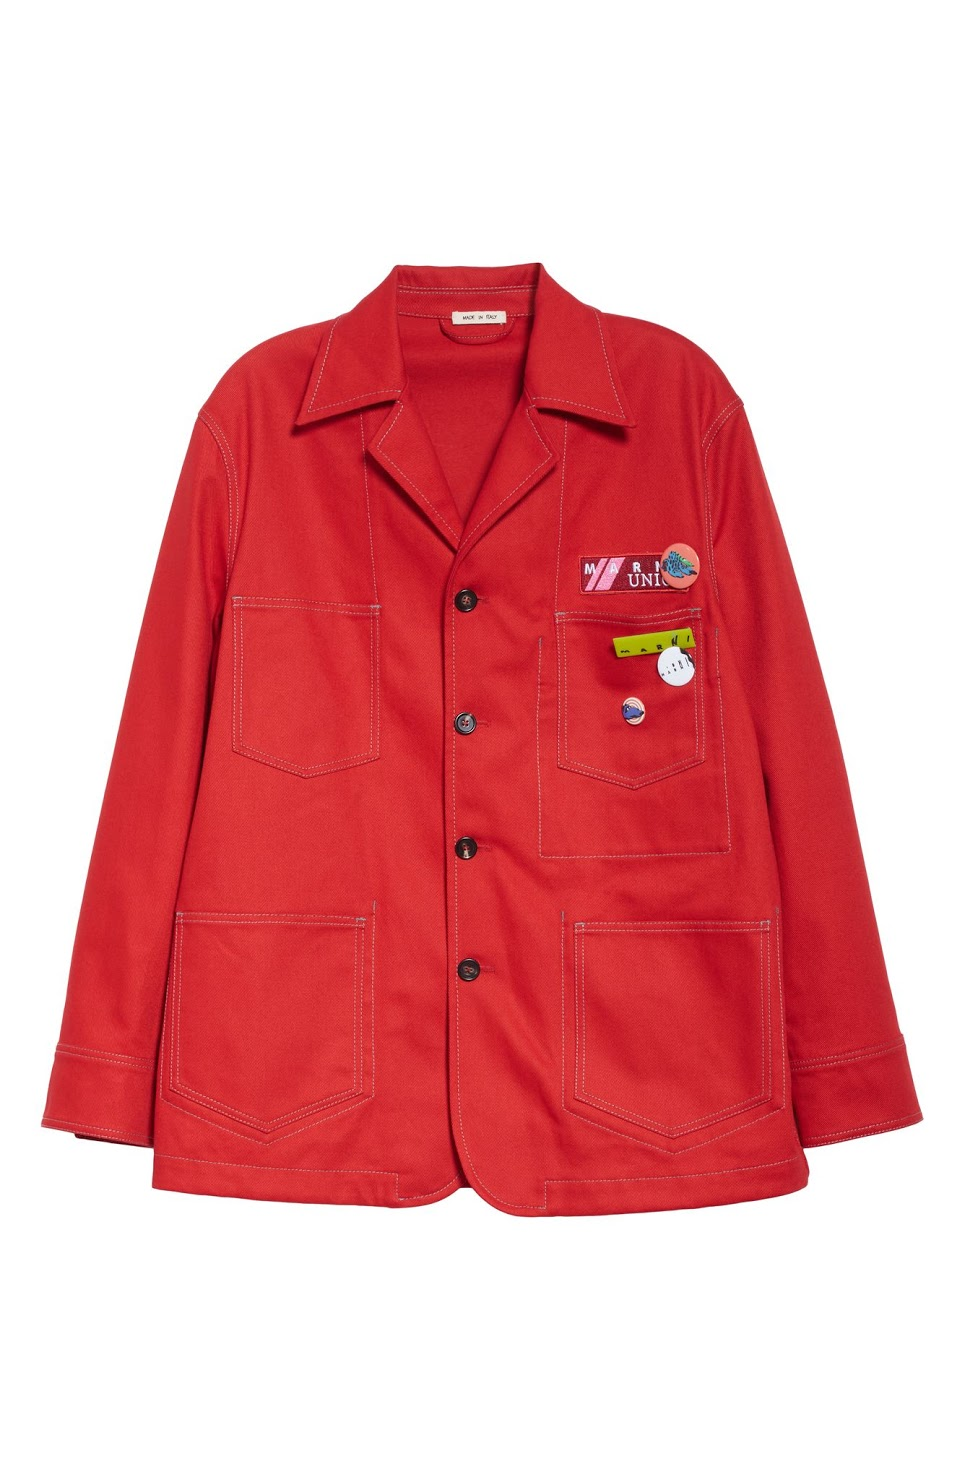 Marni_Cotton Drill Chore_Red_$1200.jpeg